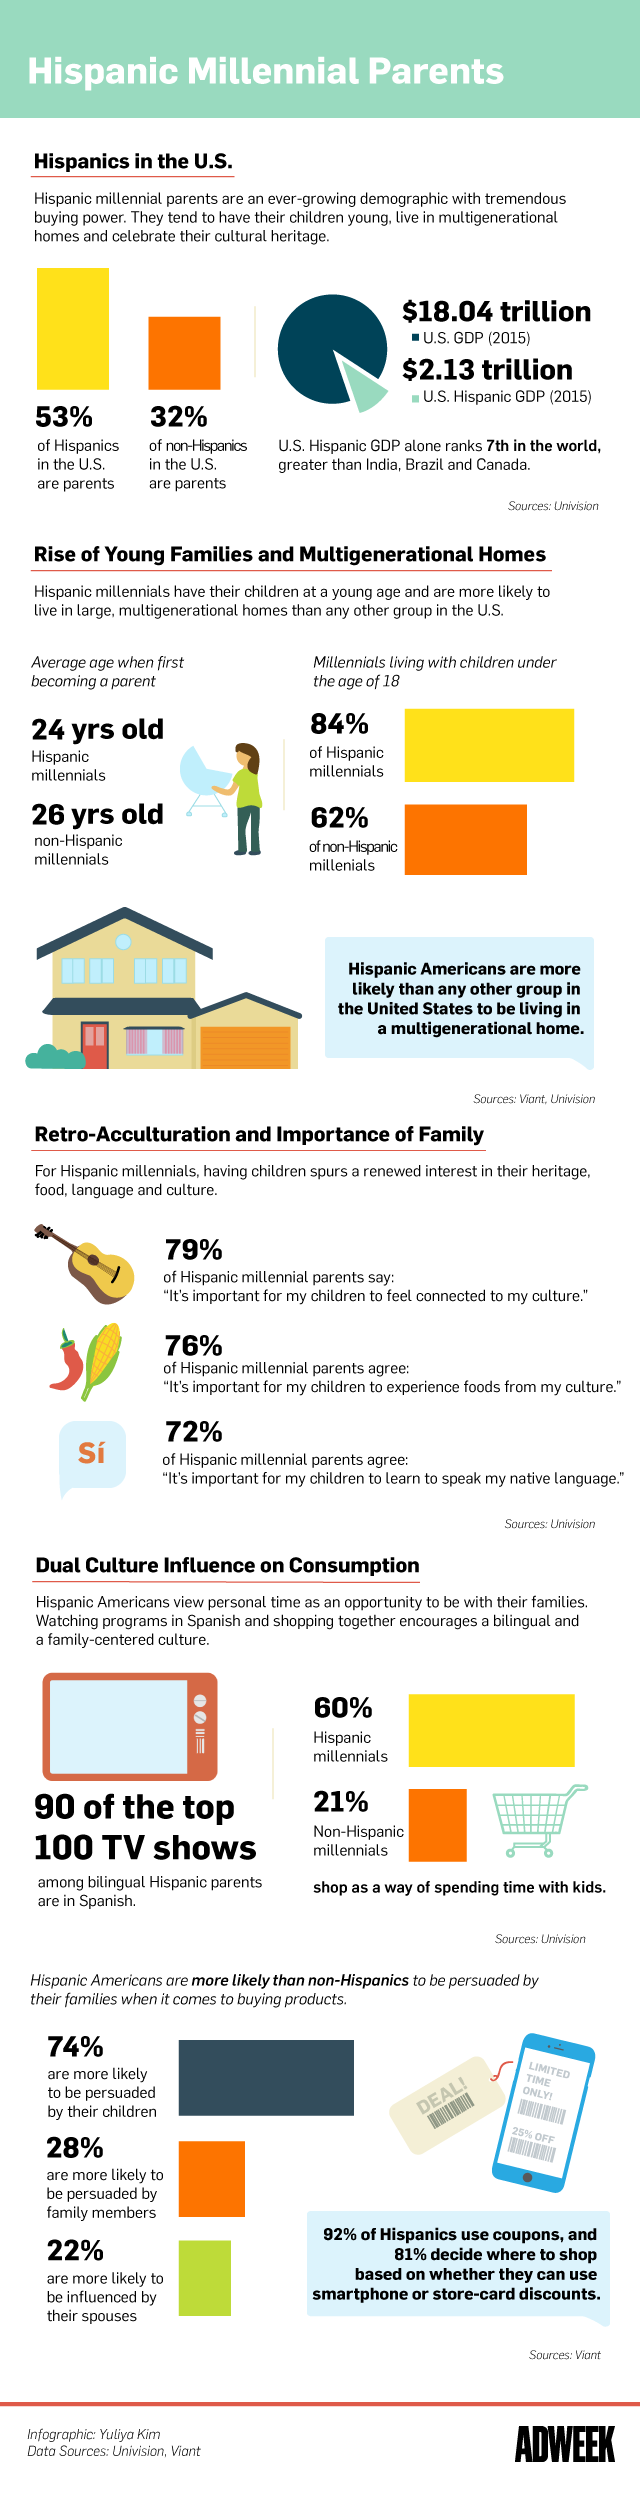 What Marketers Need to Know About Hispanic Millennial Parents [AdWeek]